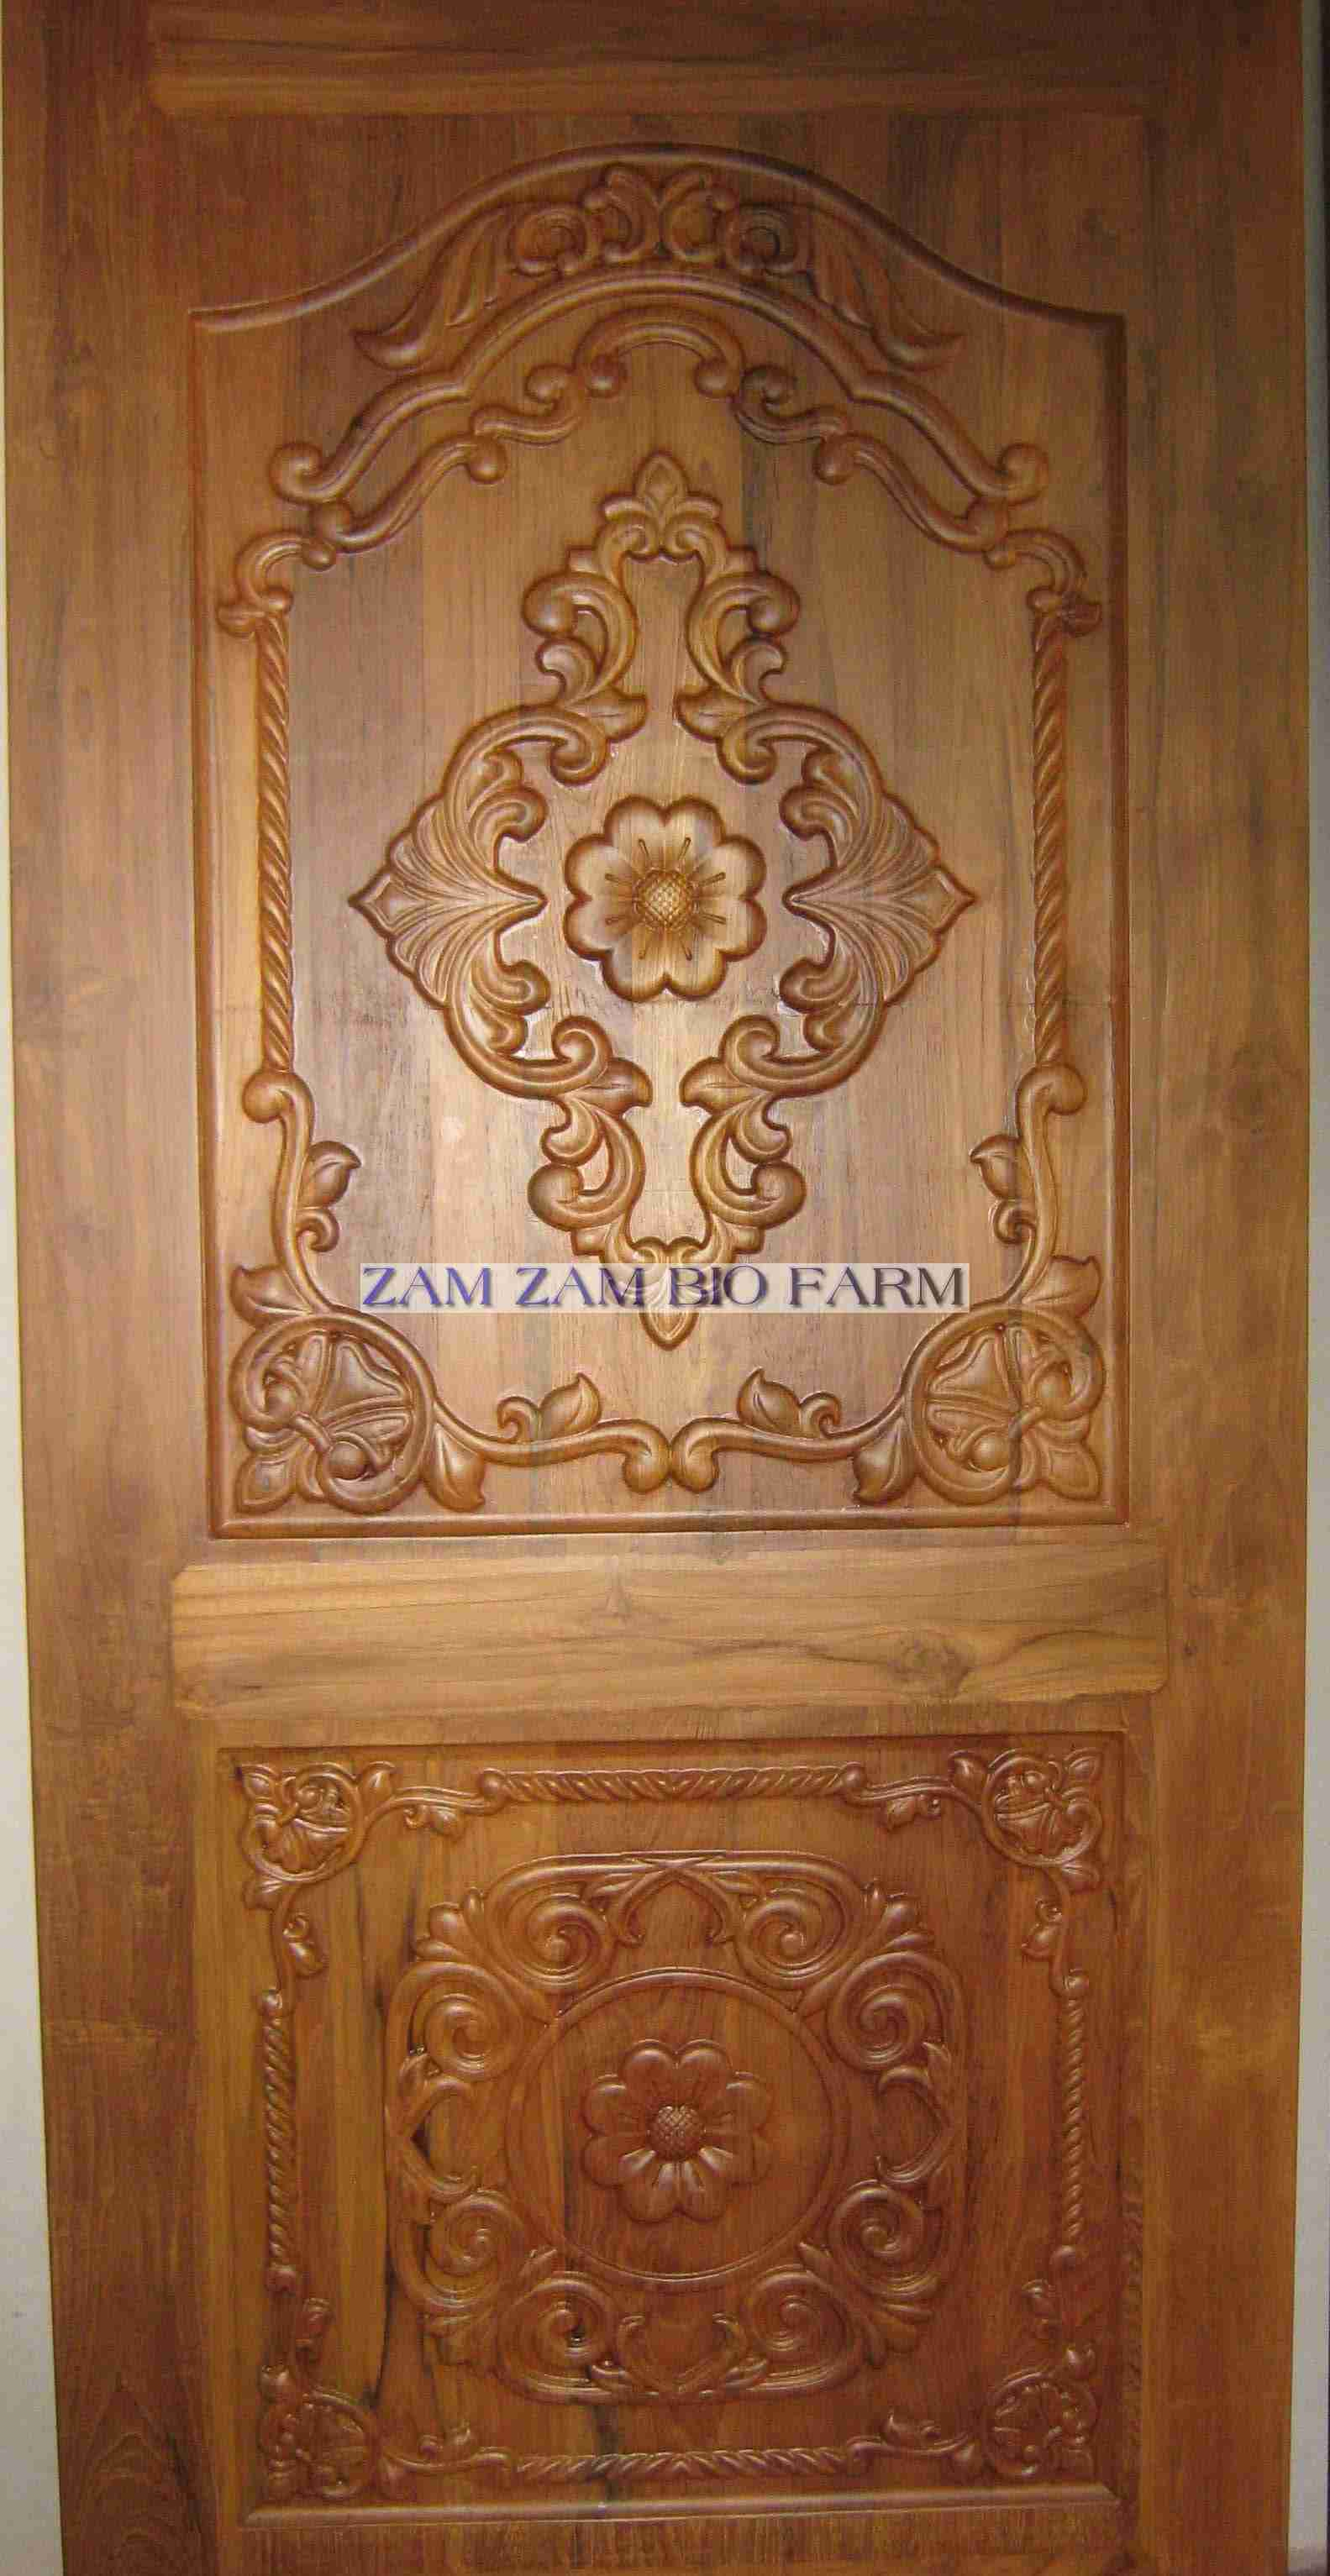 Burma teak doors manufacturer in erode tamil nadu india by for Teak wood doors designs